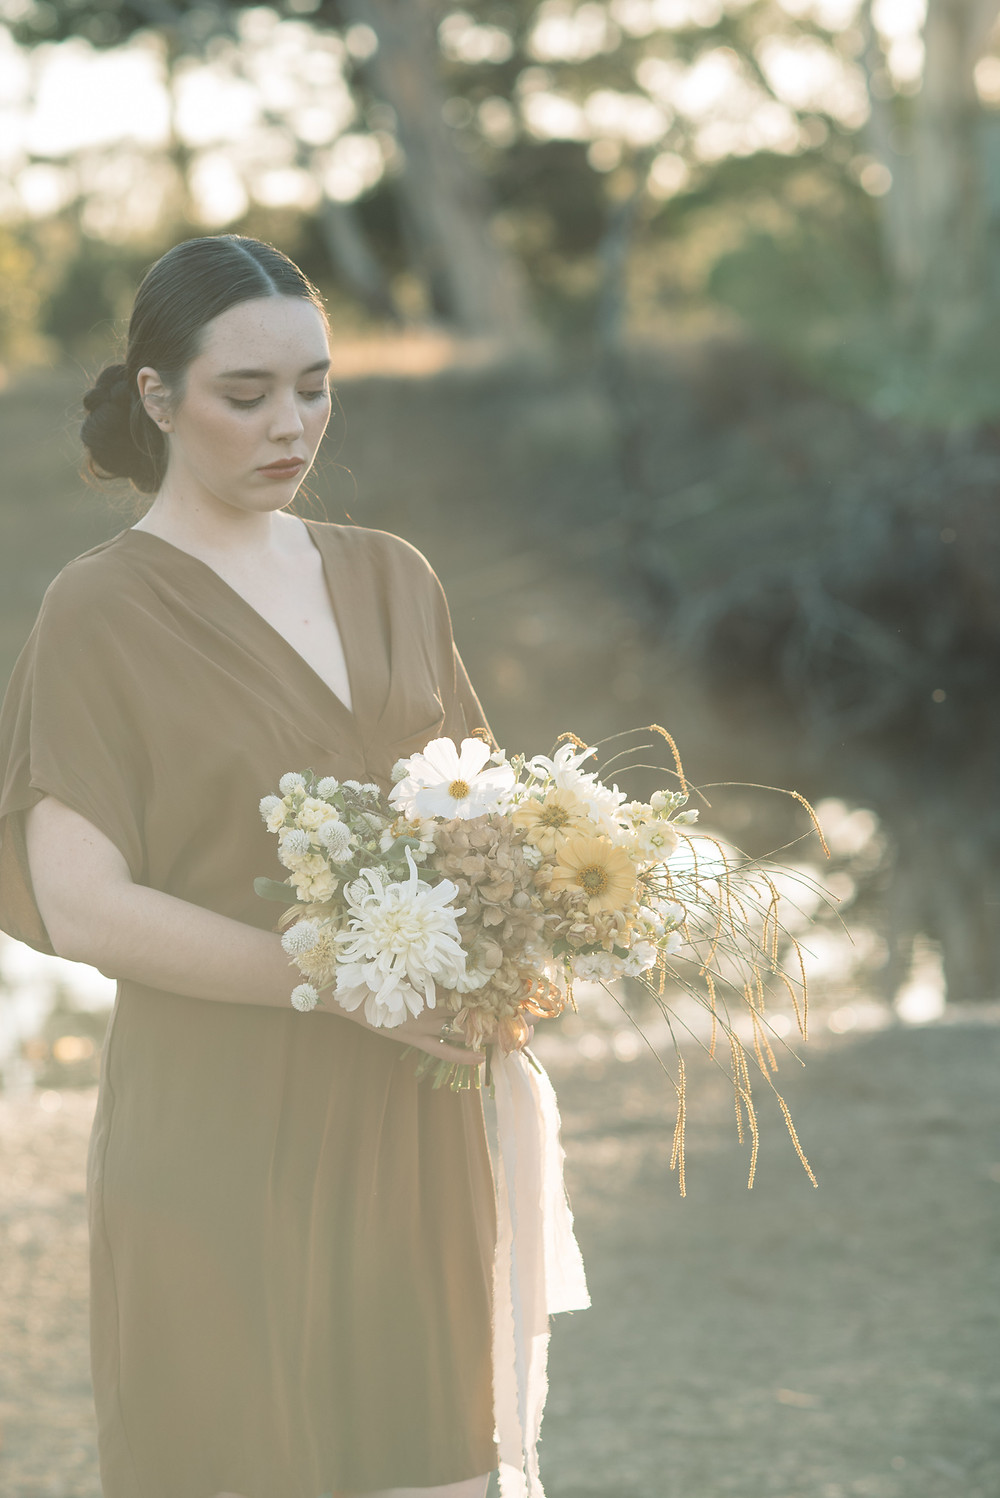 Autumn Bouquet and Photography Intensive